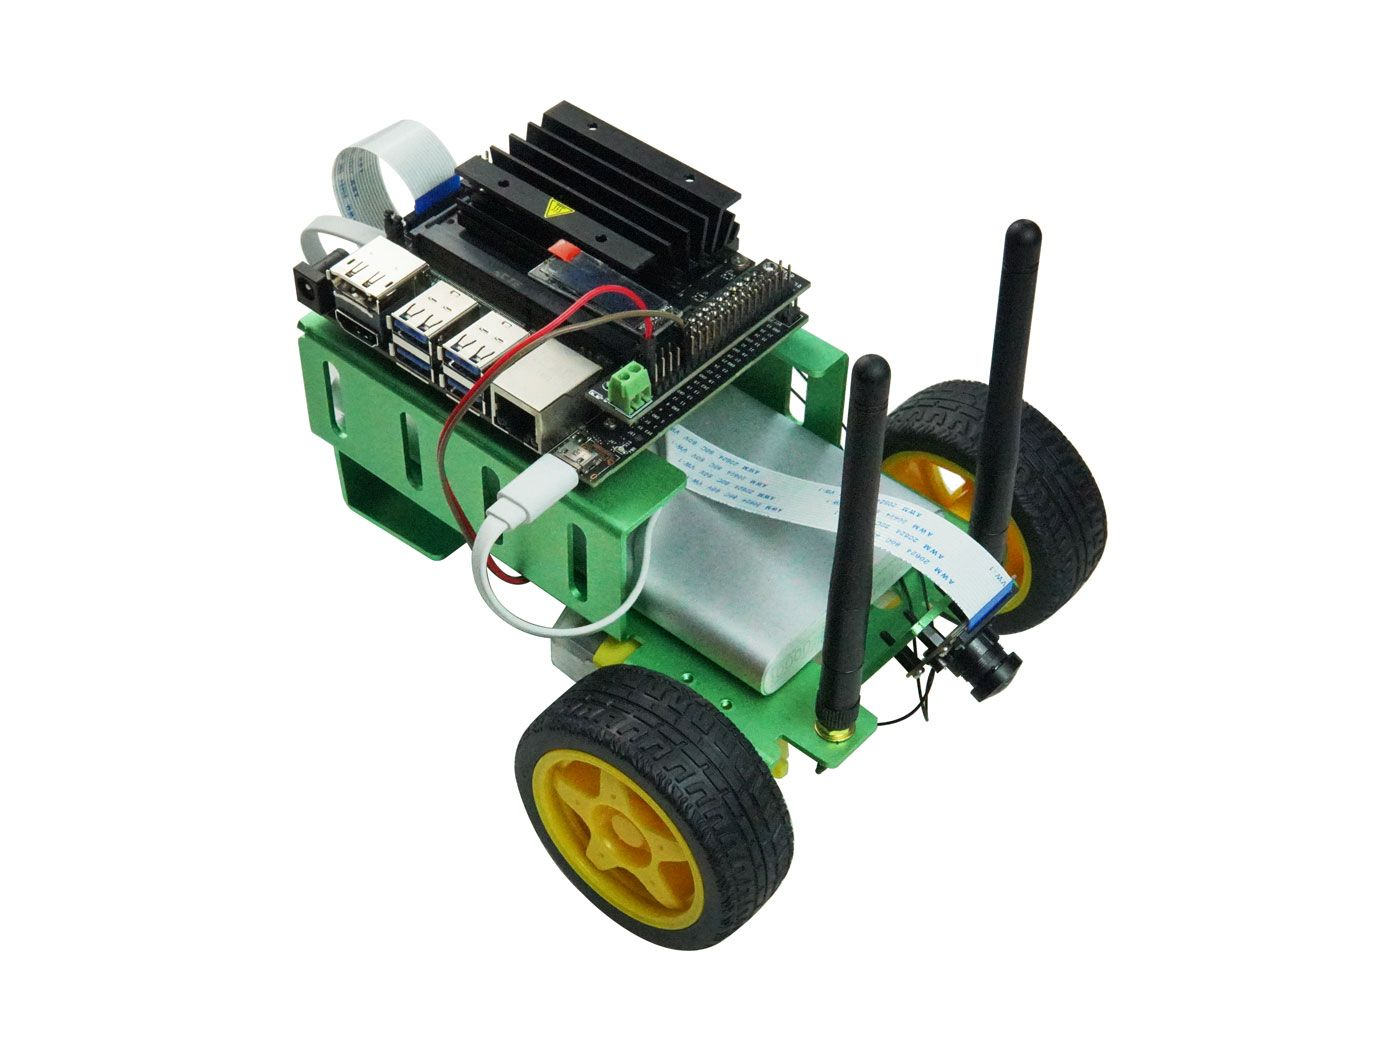 Buy Seeedstudio JetBot Smart Car Powered by NVIDIA Jetson